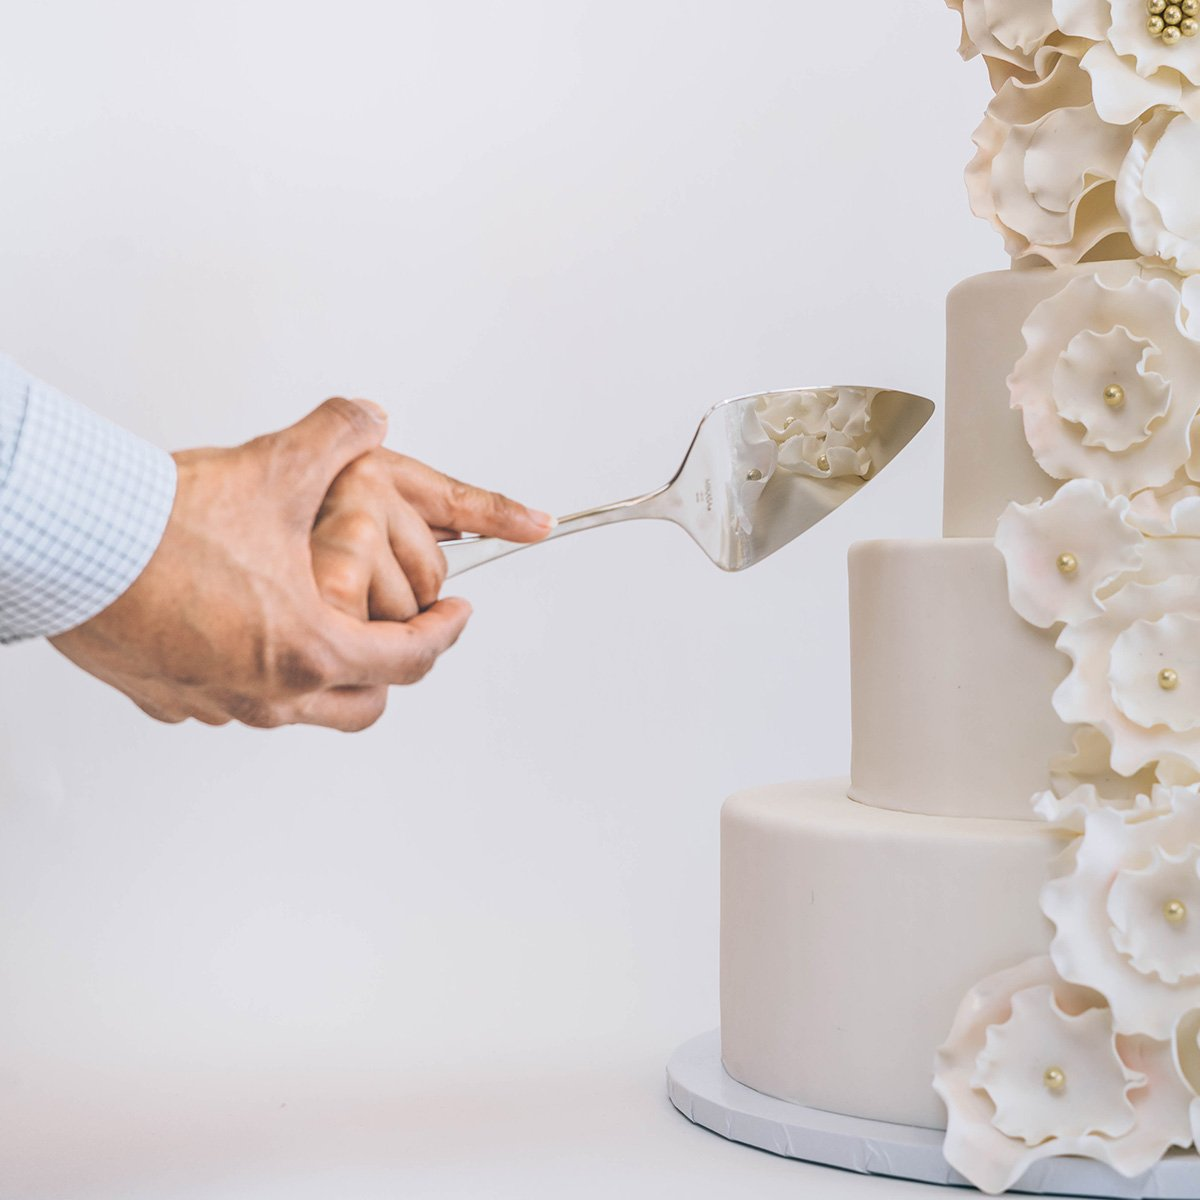 Bride Cutting Cake